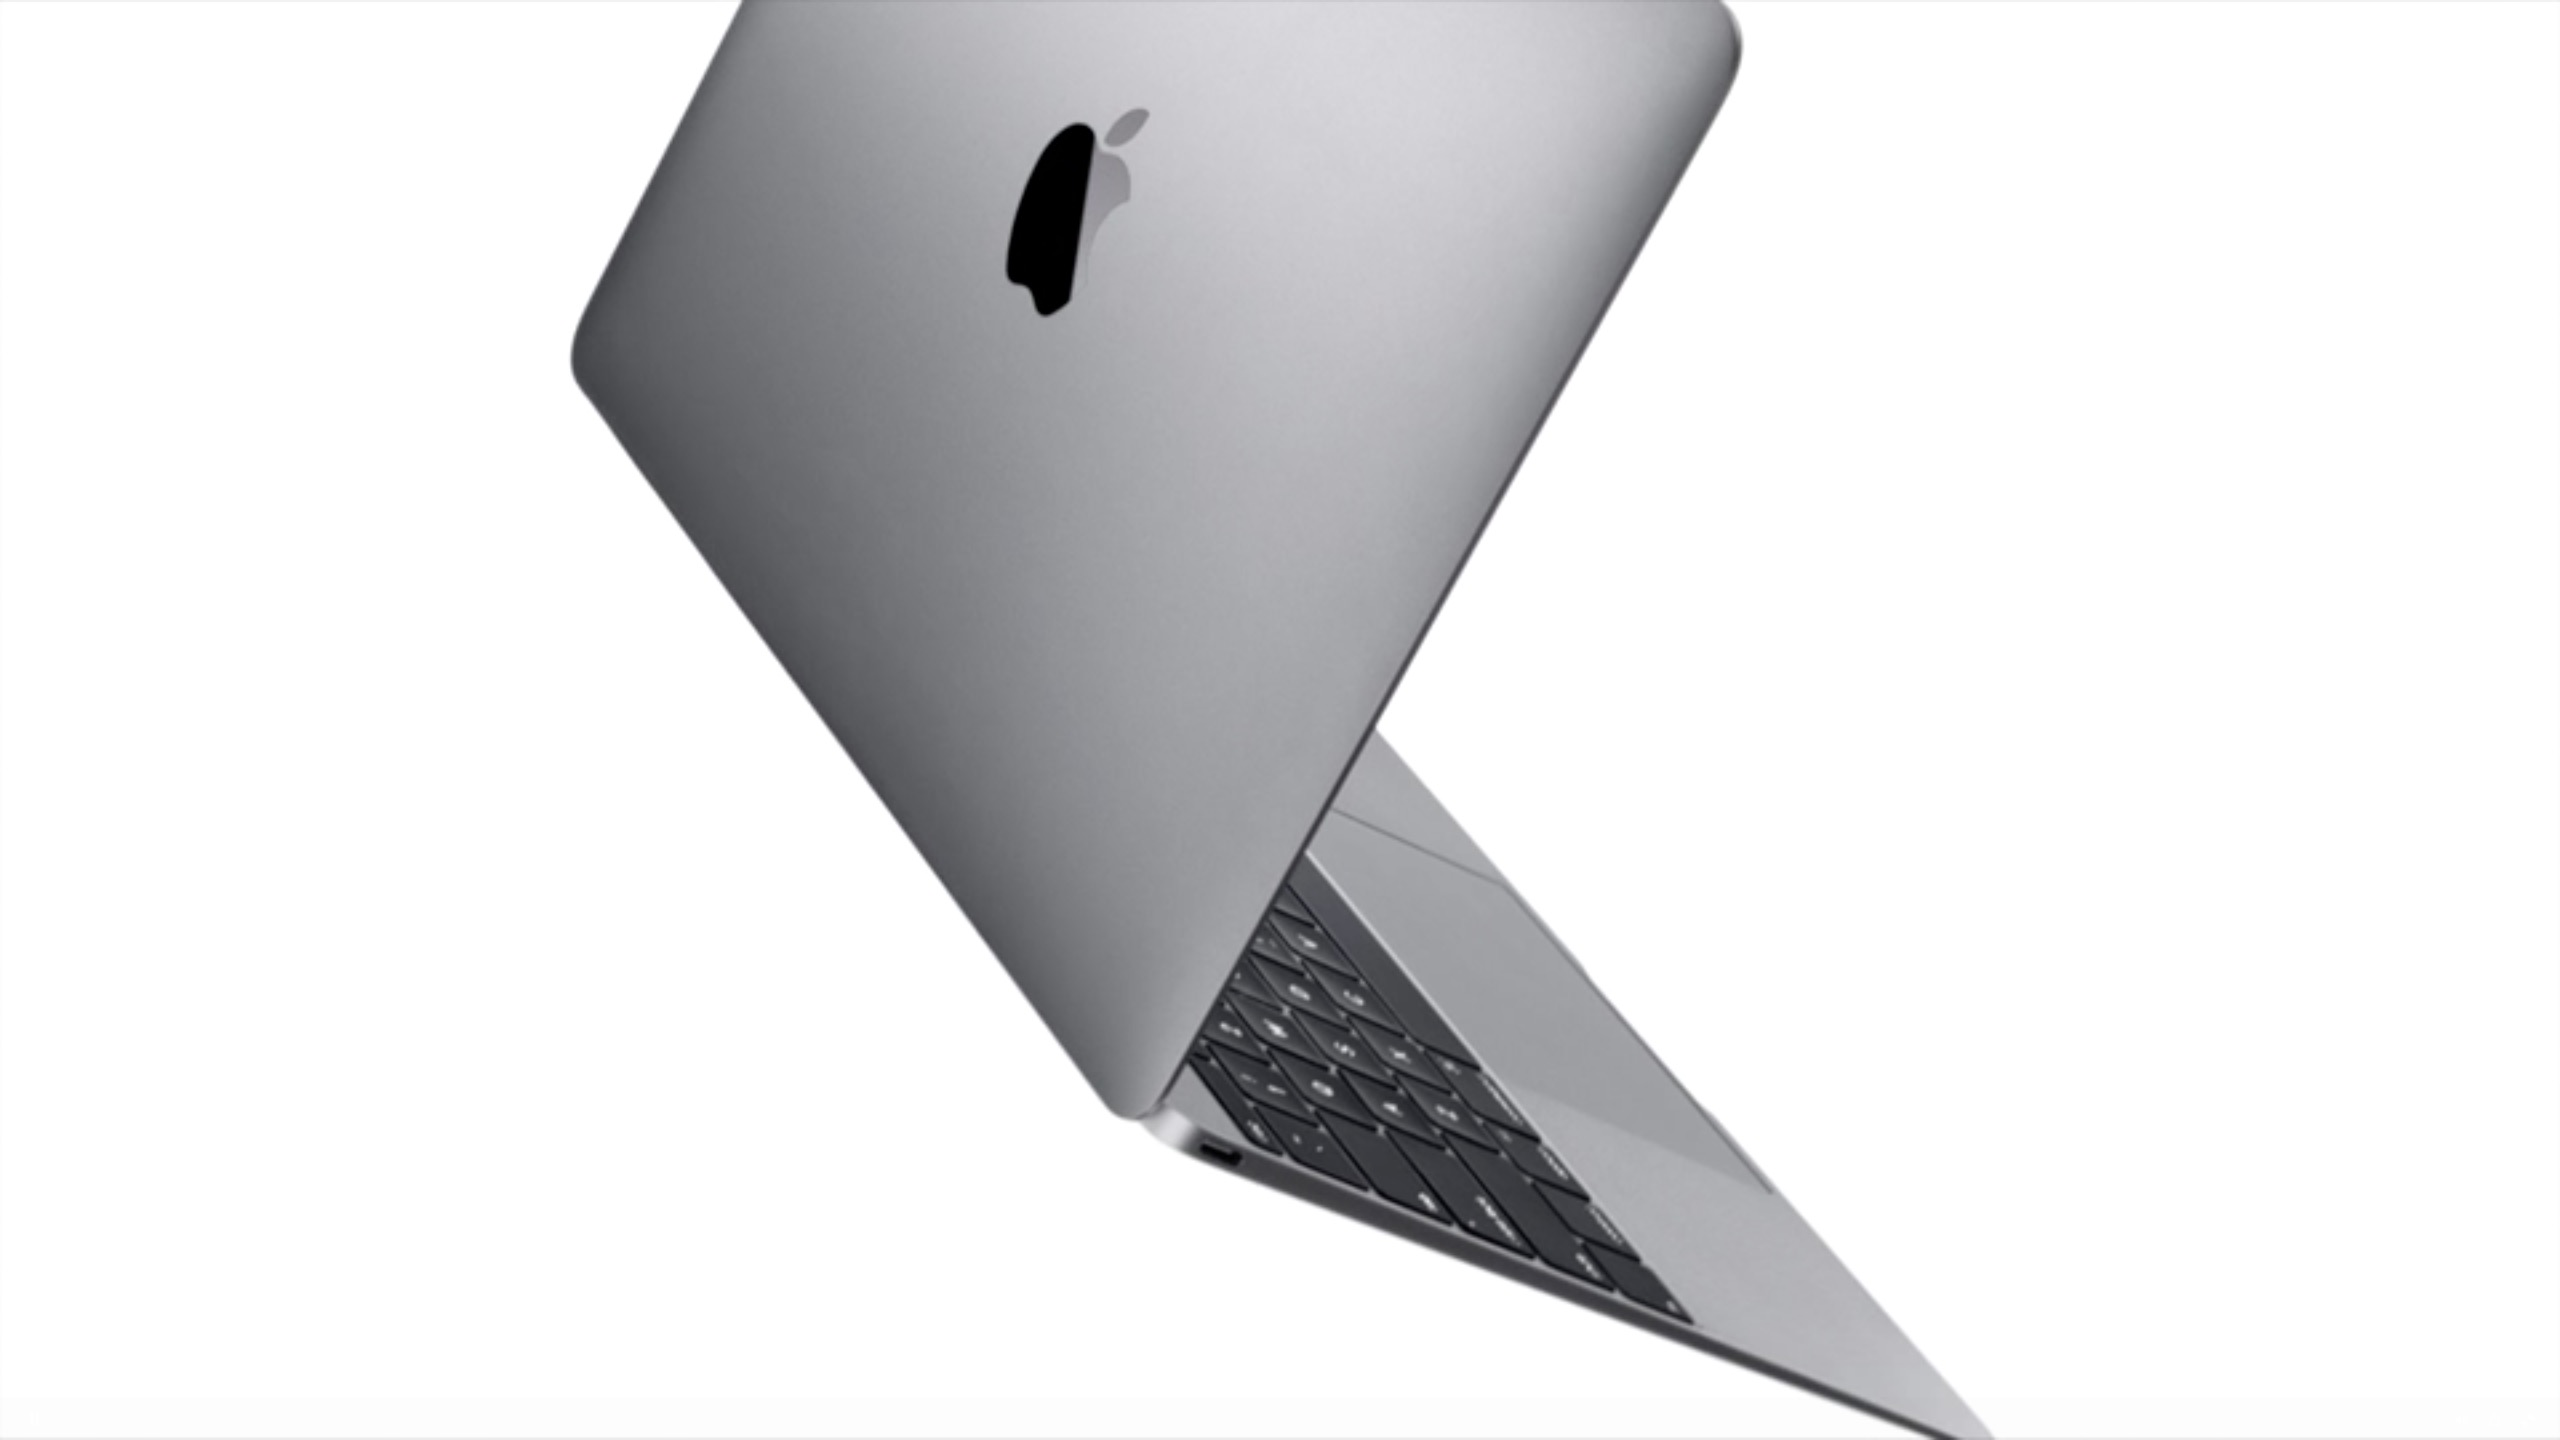 Macbook 12 inch 2015 - MJY42 Option 1.3Ghz, Ram 8GB, SSD 512GB, Mới 99% ( Grey )